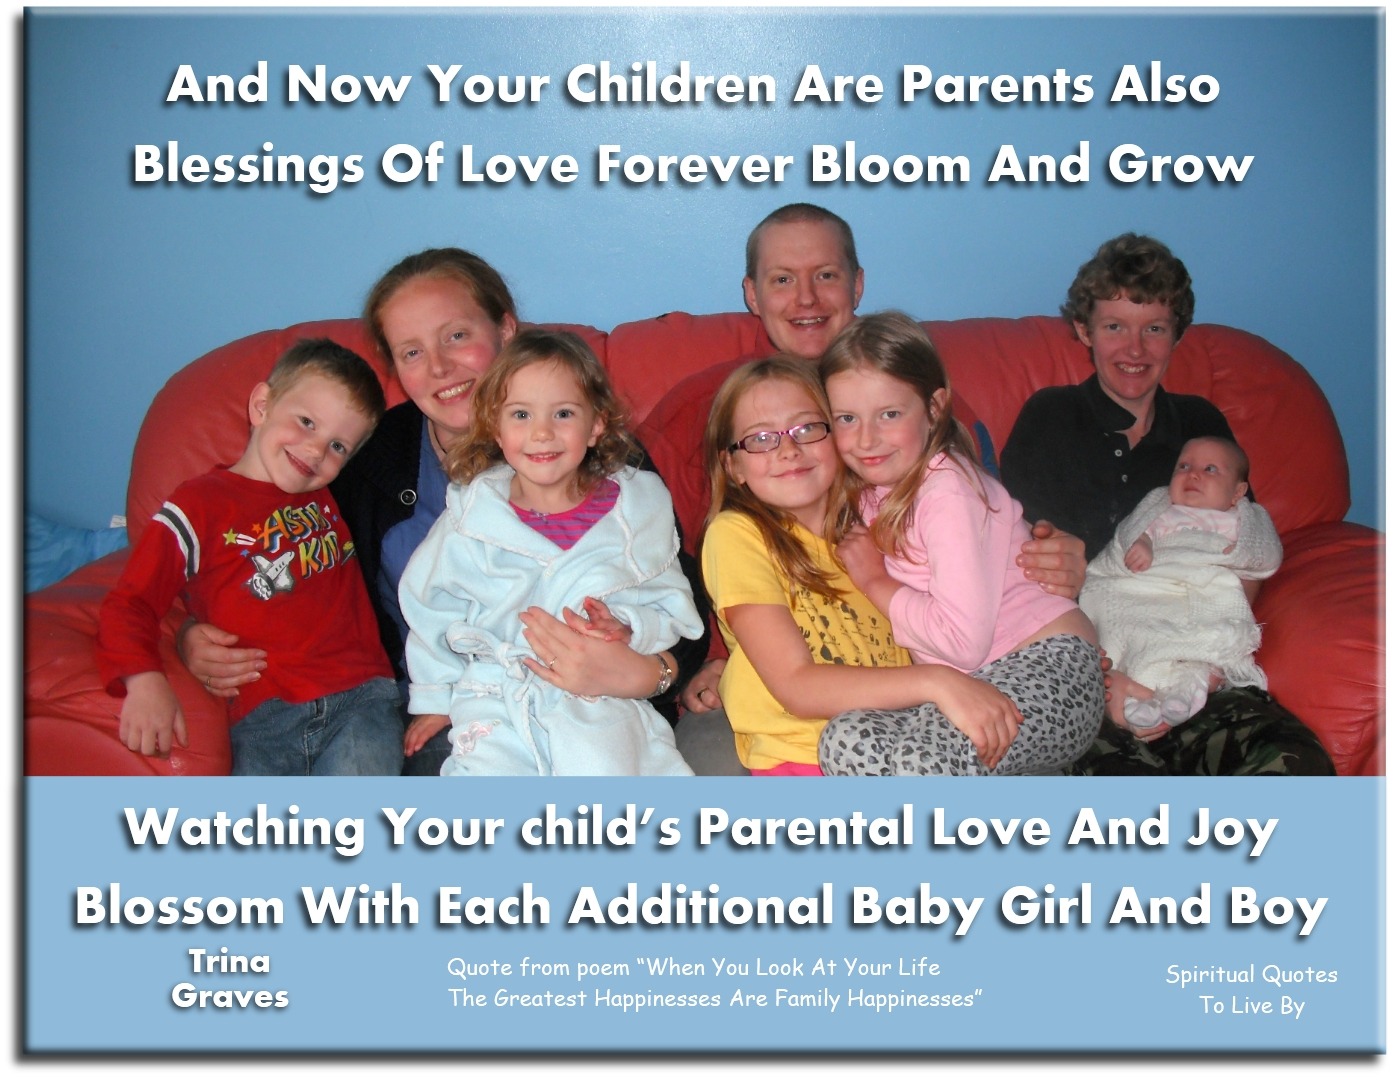 And now your children are parents also, blessings of love forever bloom and grow, watching your child's parental love and joy, blossom with each...  - Trina Graves - Spiritual Quotes To Live By